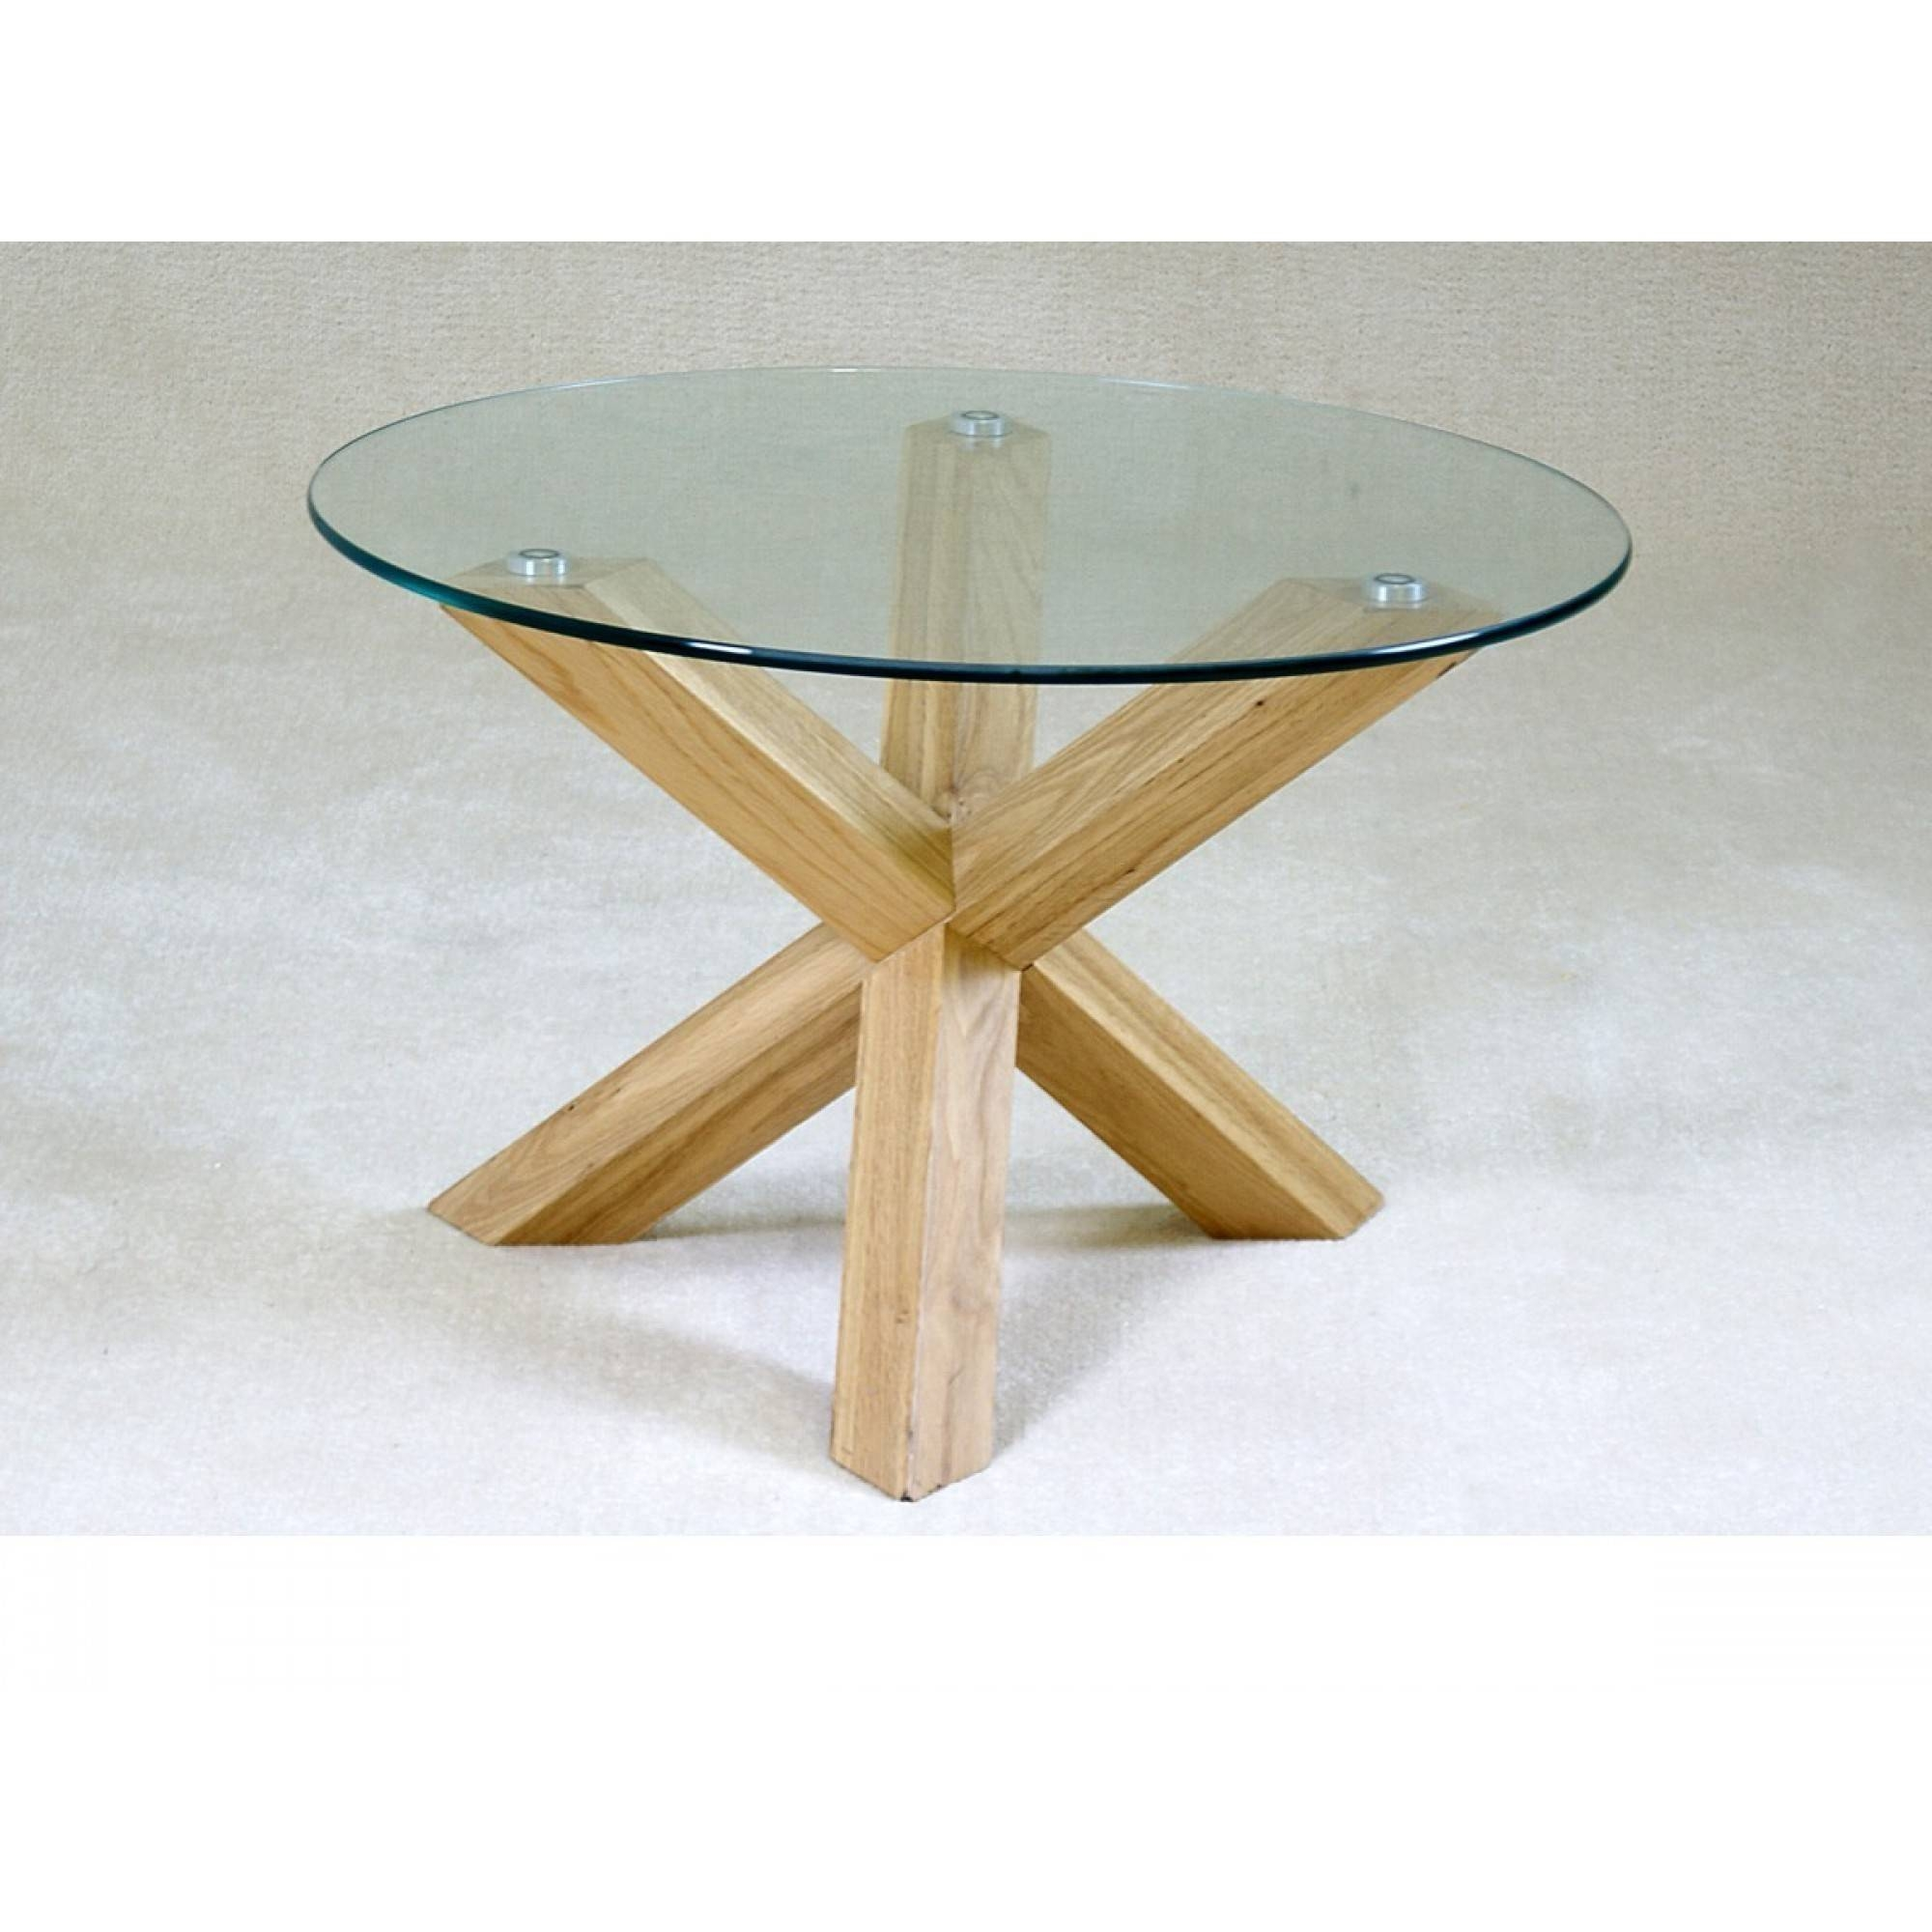 Solid Oak And Glass Coffee Tables | Coffee Tables Decoration intended for Round Oak Coffee Tables (Image 30 of 30)